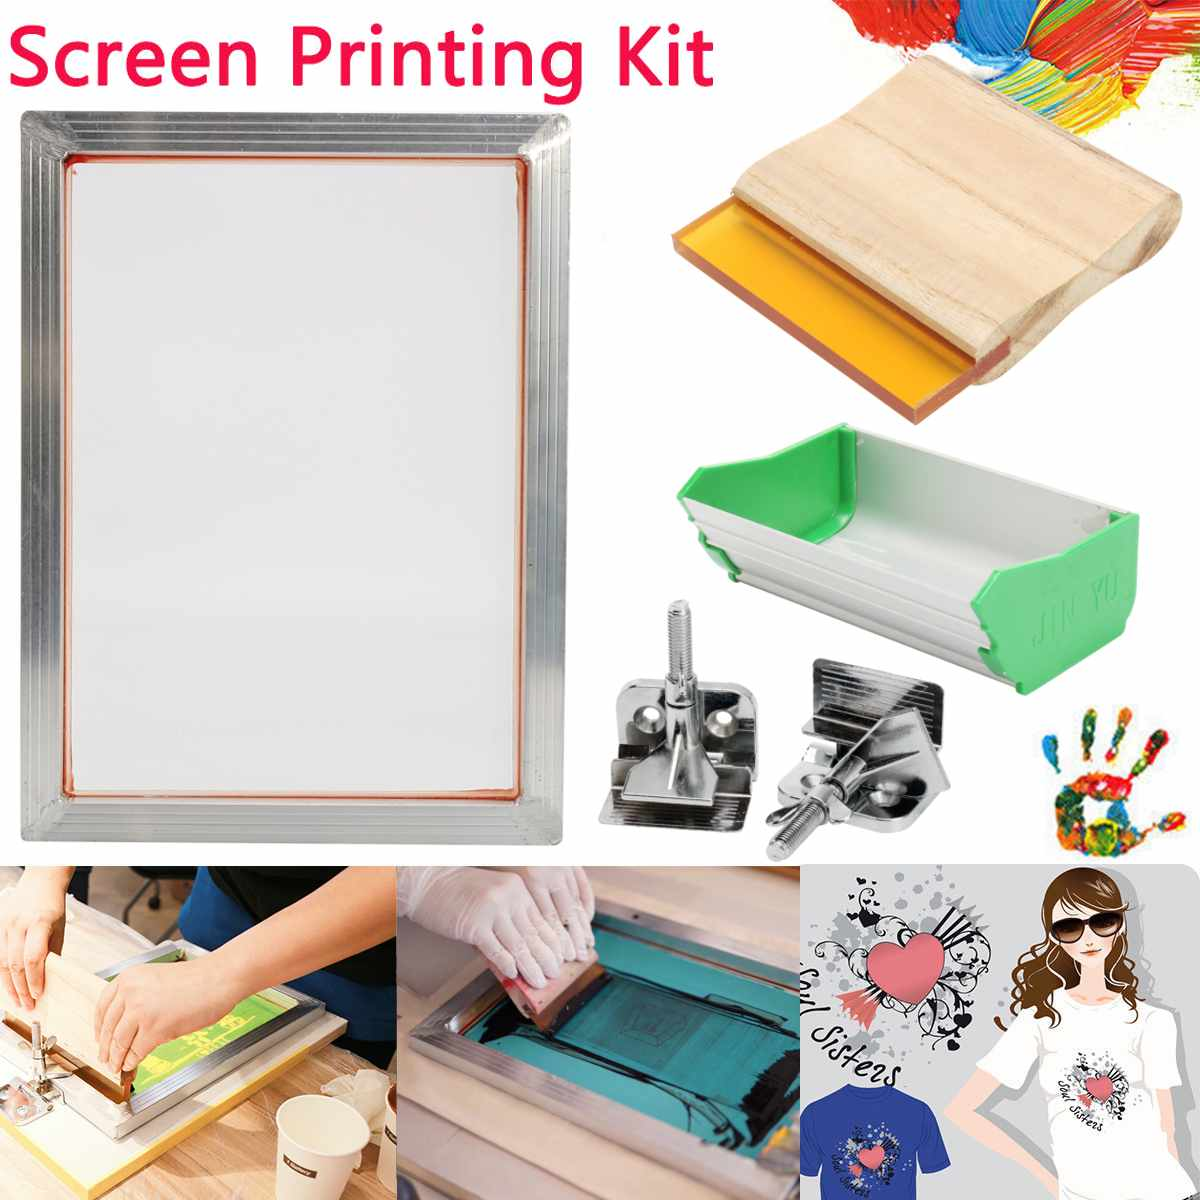 5Pcs/Set A5 Screen Printing Kit Aluminum Frame+Hinge Clamp+Emulsion Coater+Squeegee Screen Frame Printing Tool Parts 2019 New5Pcs/Set A5 Screen Printing Kit Aluminum Frame+Hinge Clamp+Emulsion Coater+Squeegee Screen Frame Printing Tool Parts 2019 New